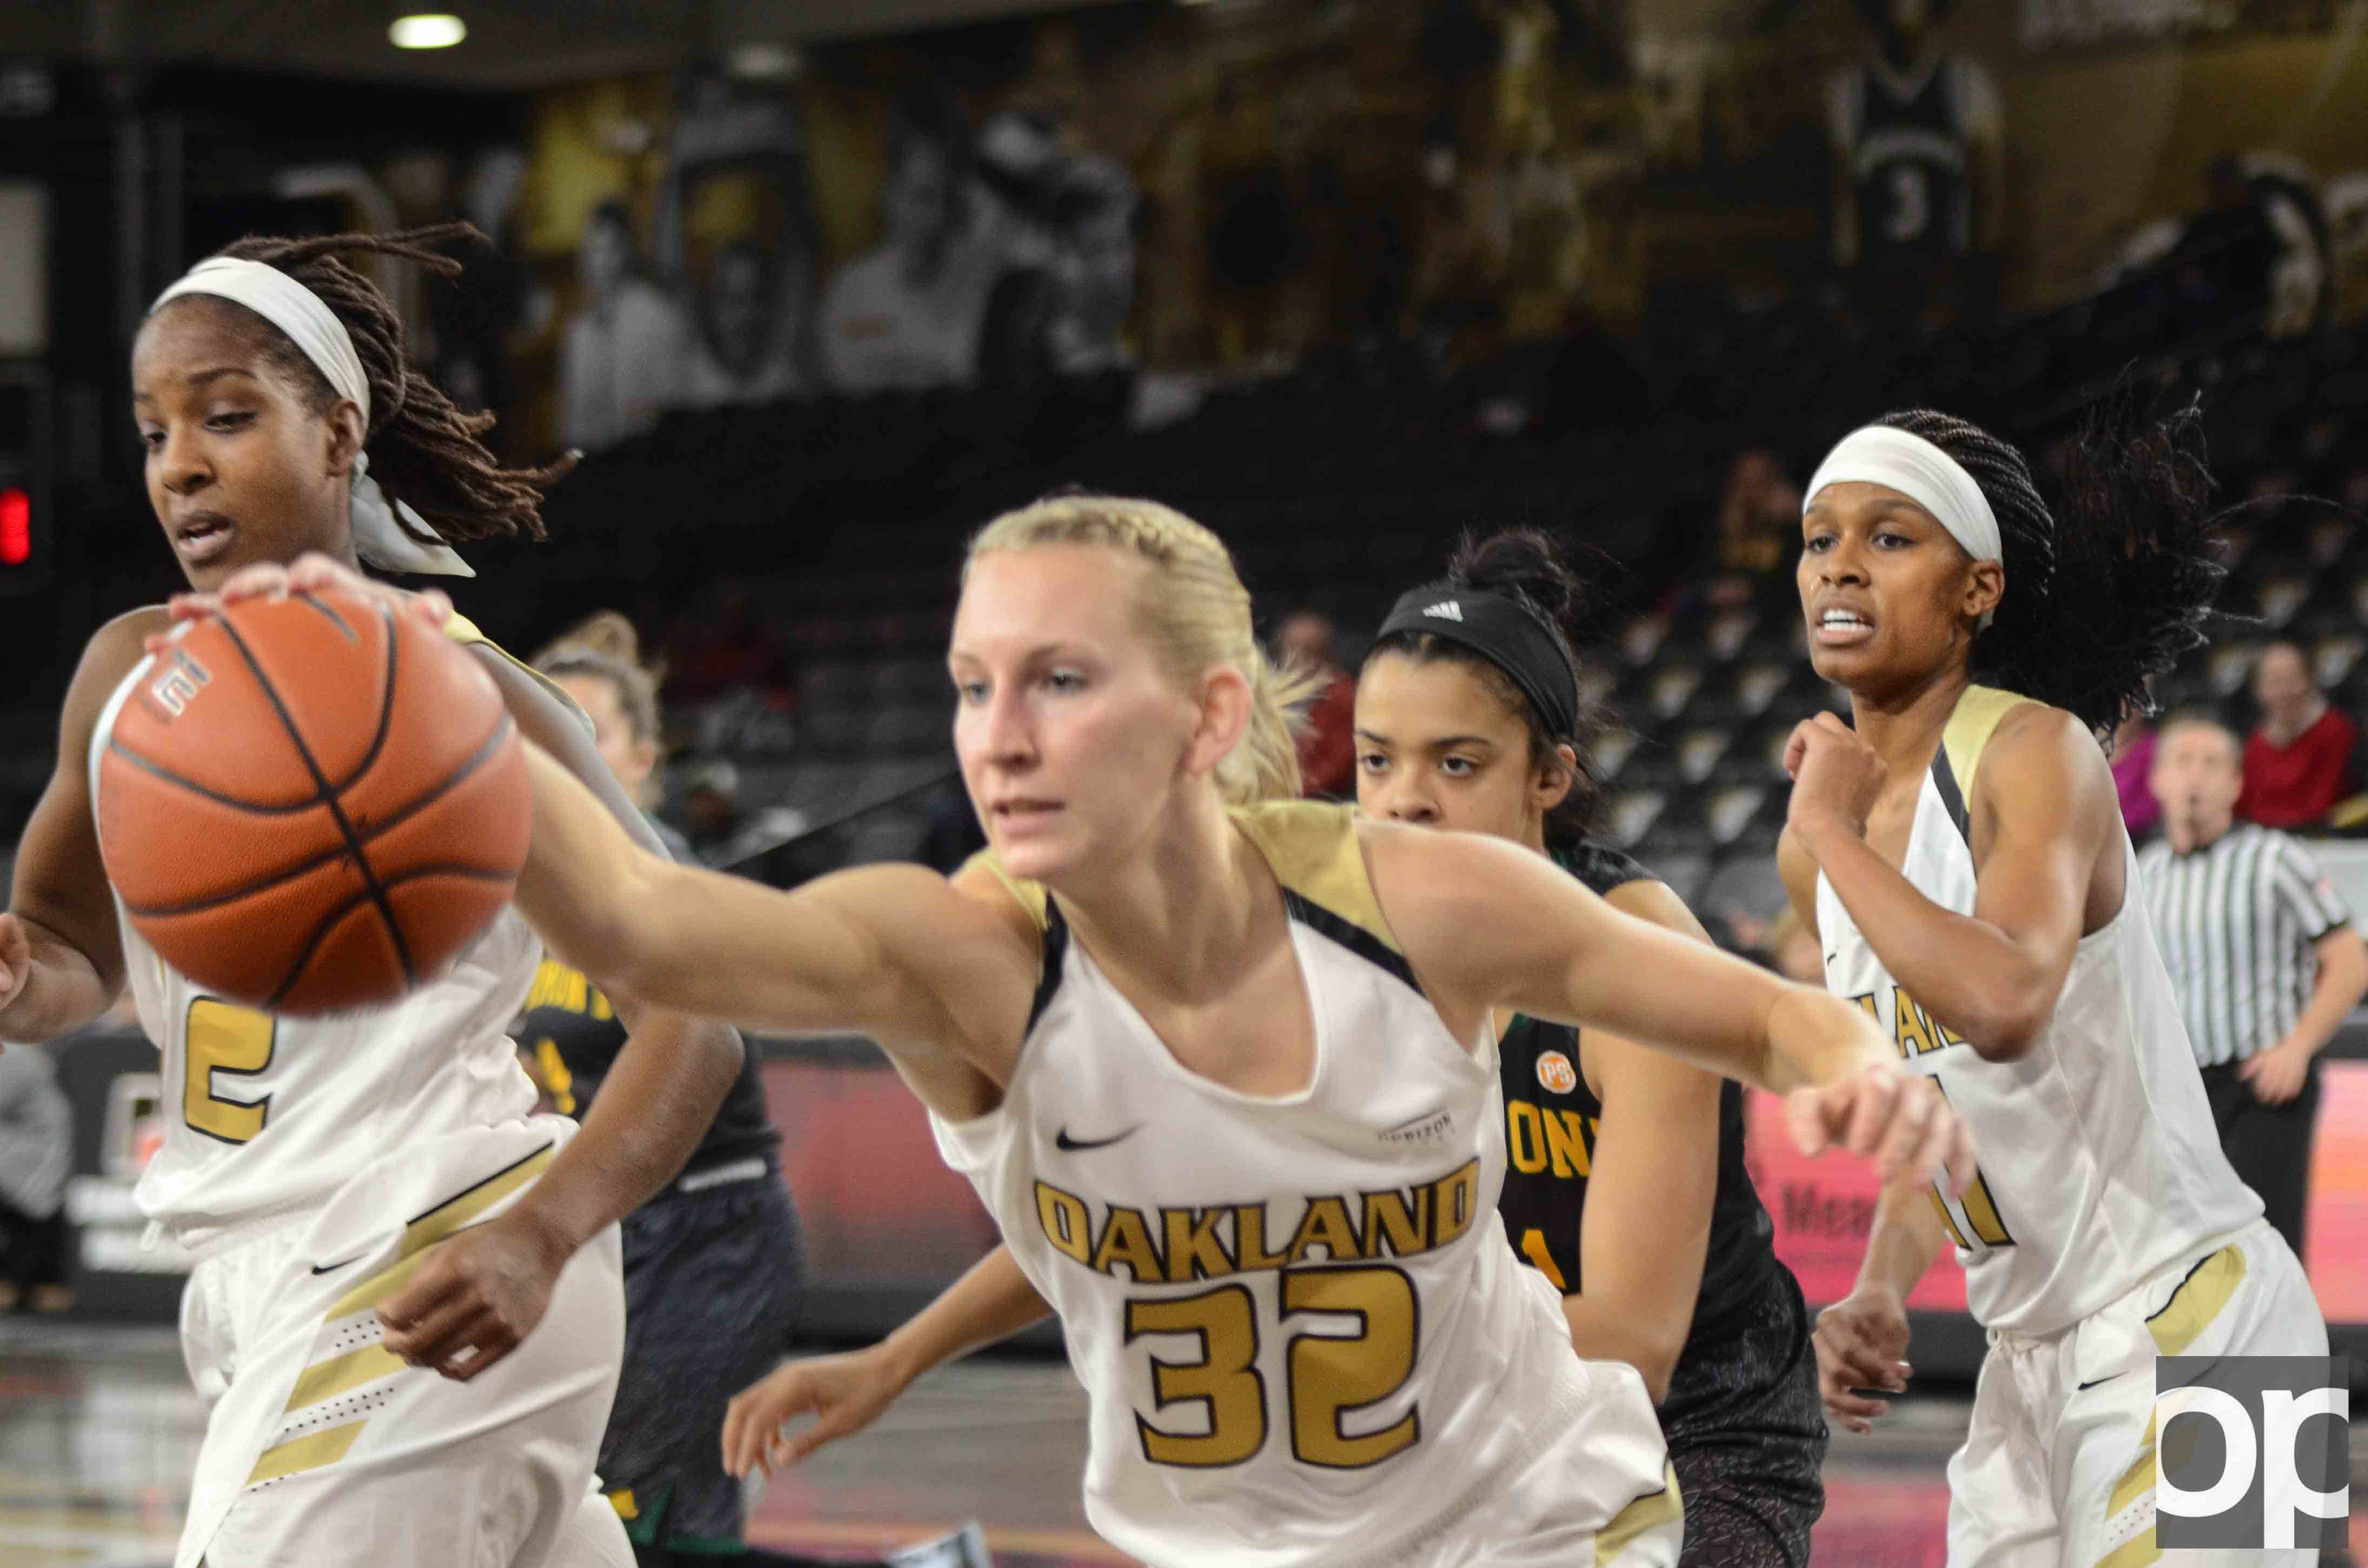 Oakland clinched a win against Vermont 79-55 on Tuesday, Dec. 20 at the O'rena.